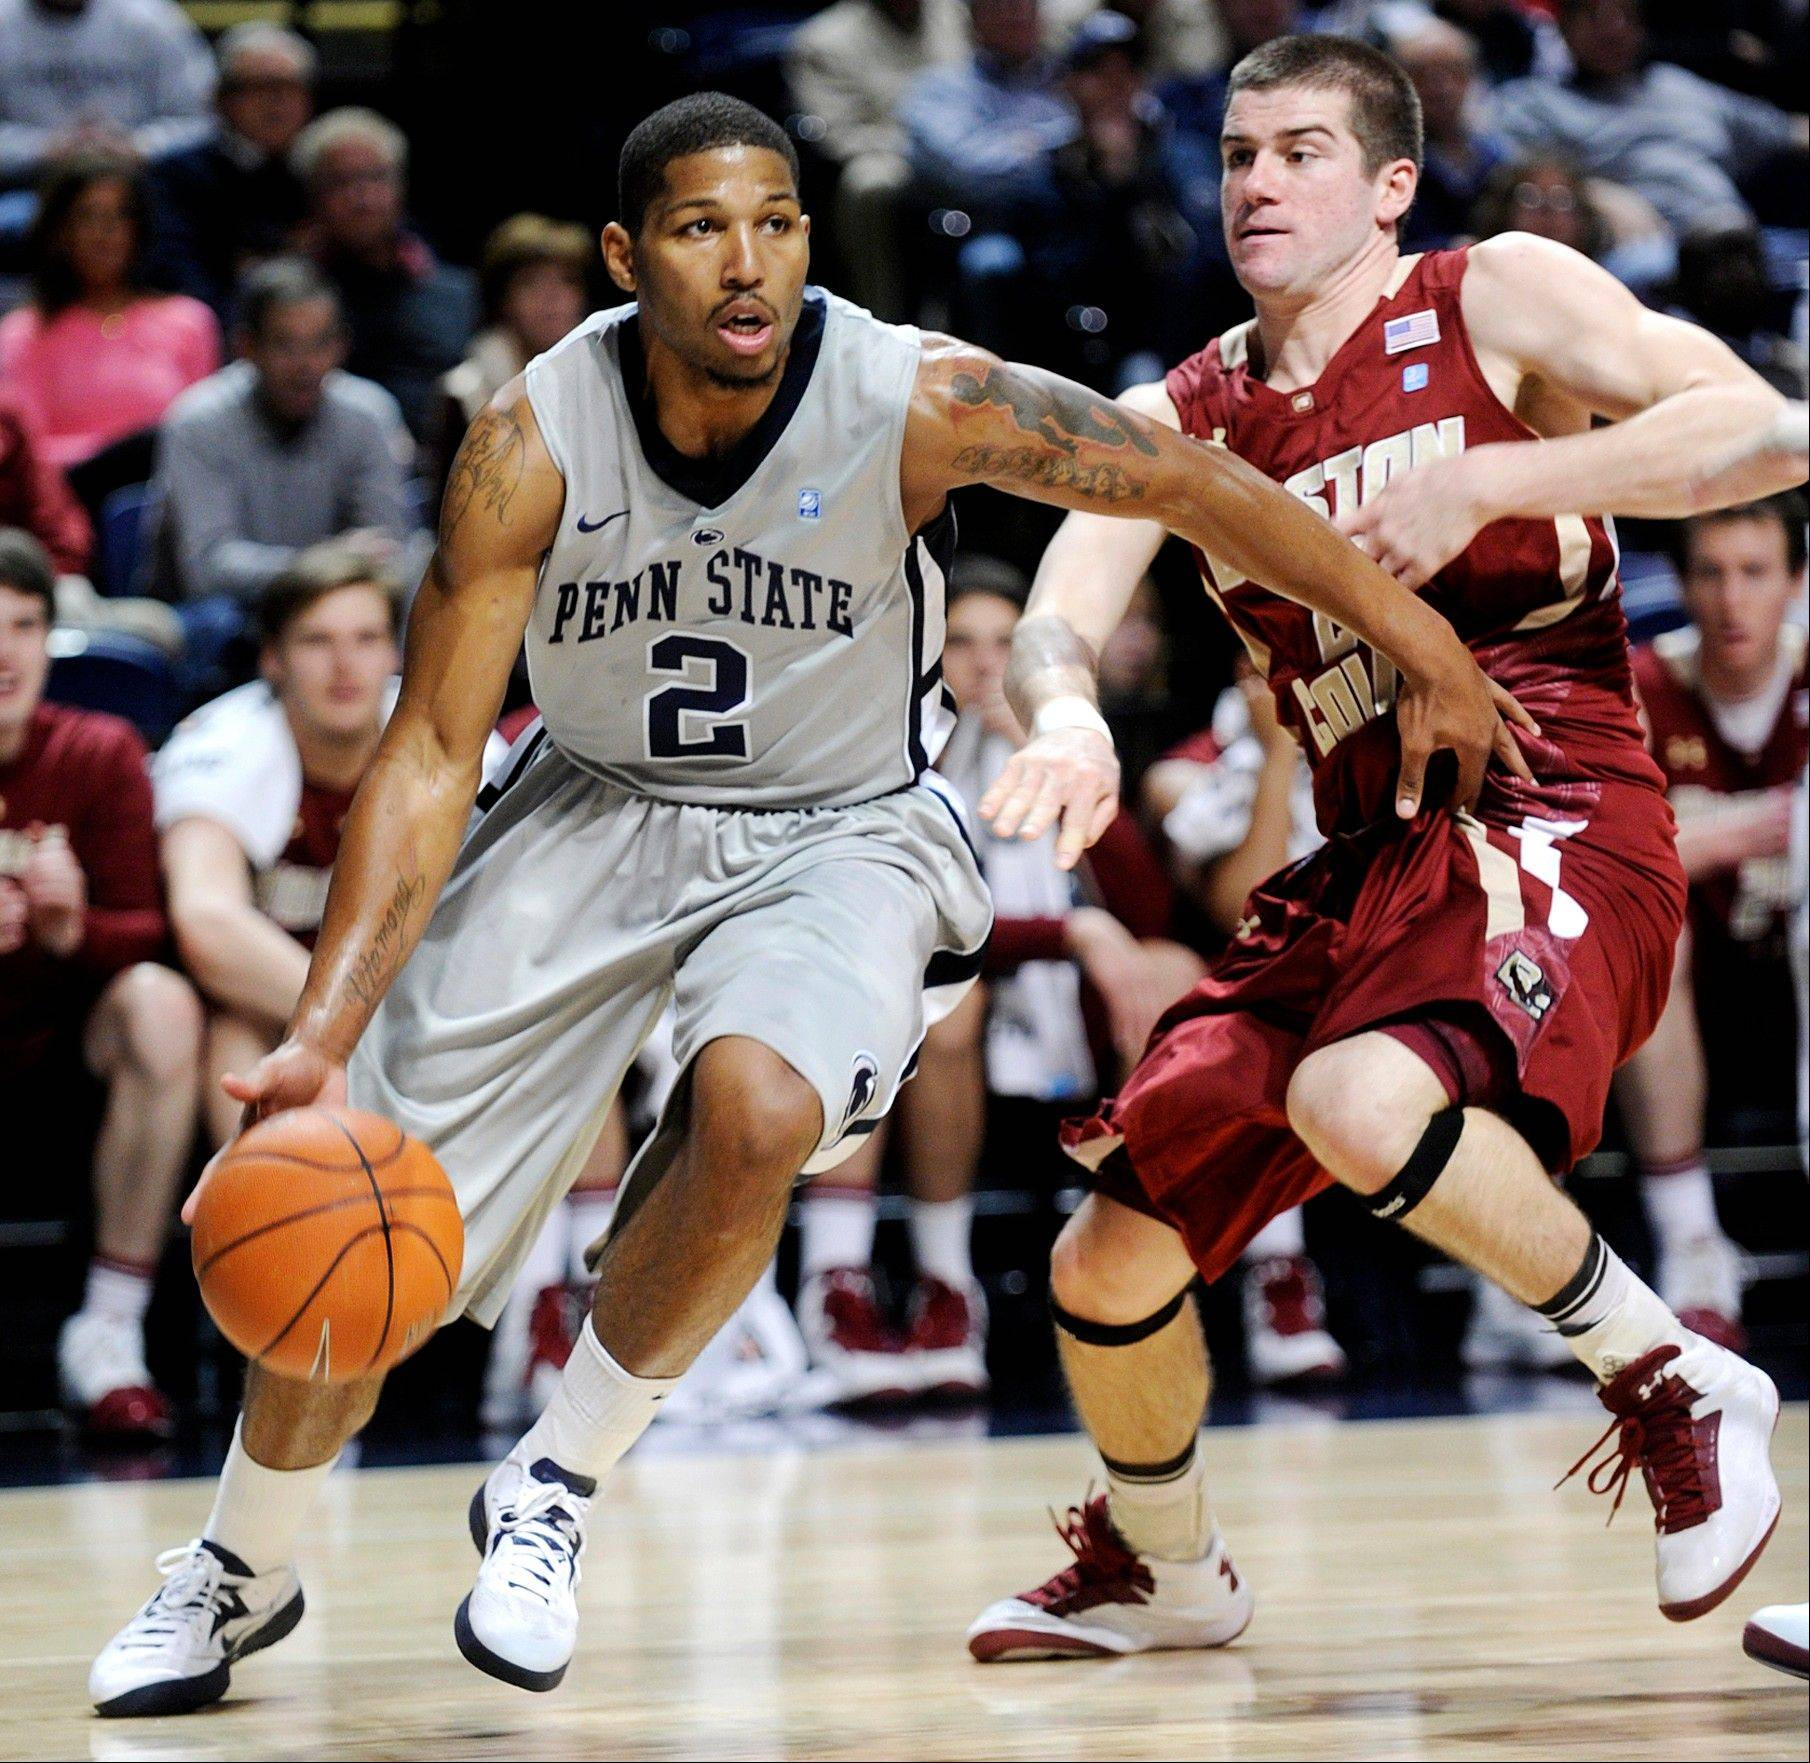 Boston College holds off Penn State 73-61